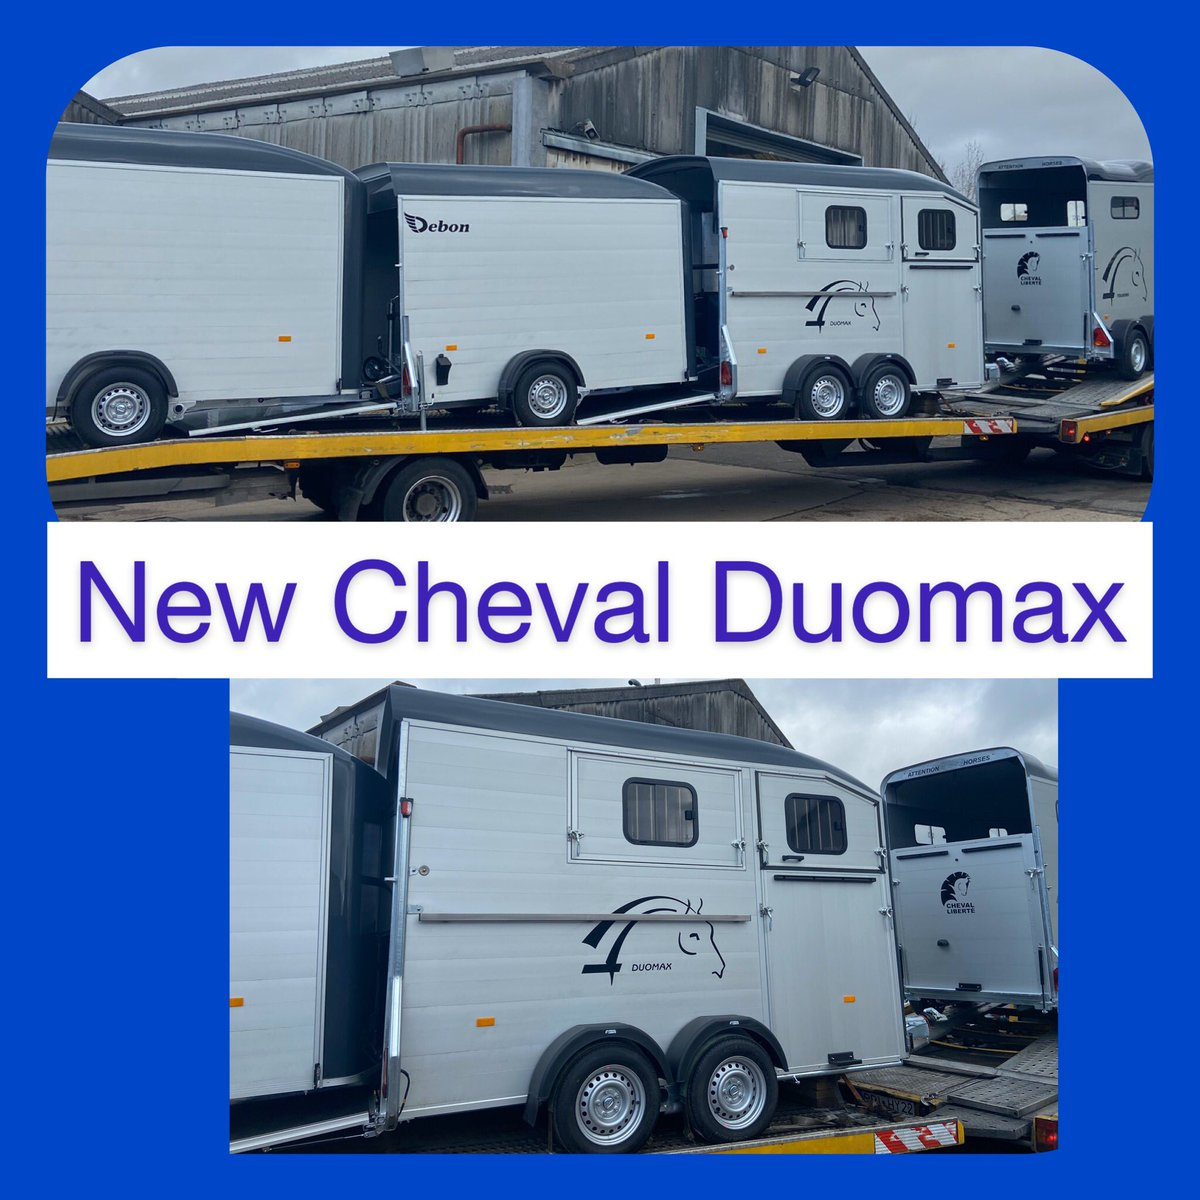 Brand New Cheval Duomax (Double Herringbone) has arrived today!One of the first models in the UK!  t: 07500 810523 to view  #chevalliberte #horsetrailer #herringbone #besthorsetrailer #equestrian #equestrianlife #horseshow #ponyclub #dressage #horseriding #showjumping #eventingpic.twitter.com/S5a08OTCBF